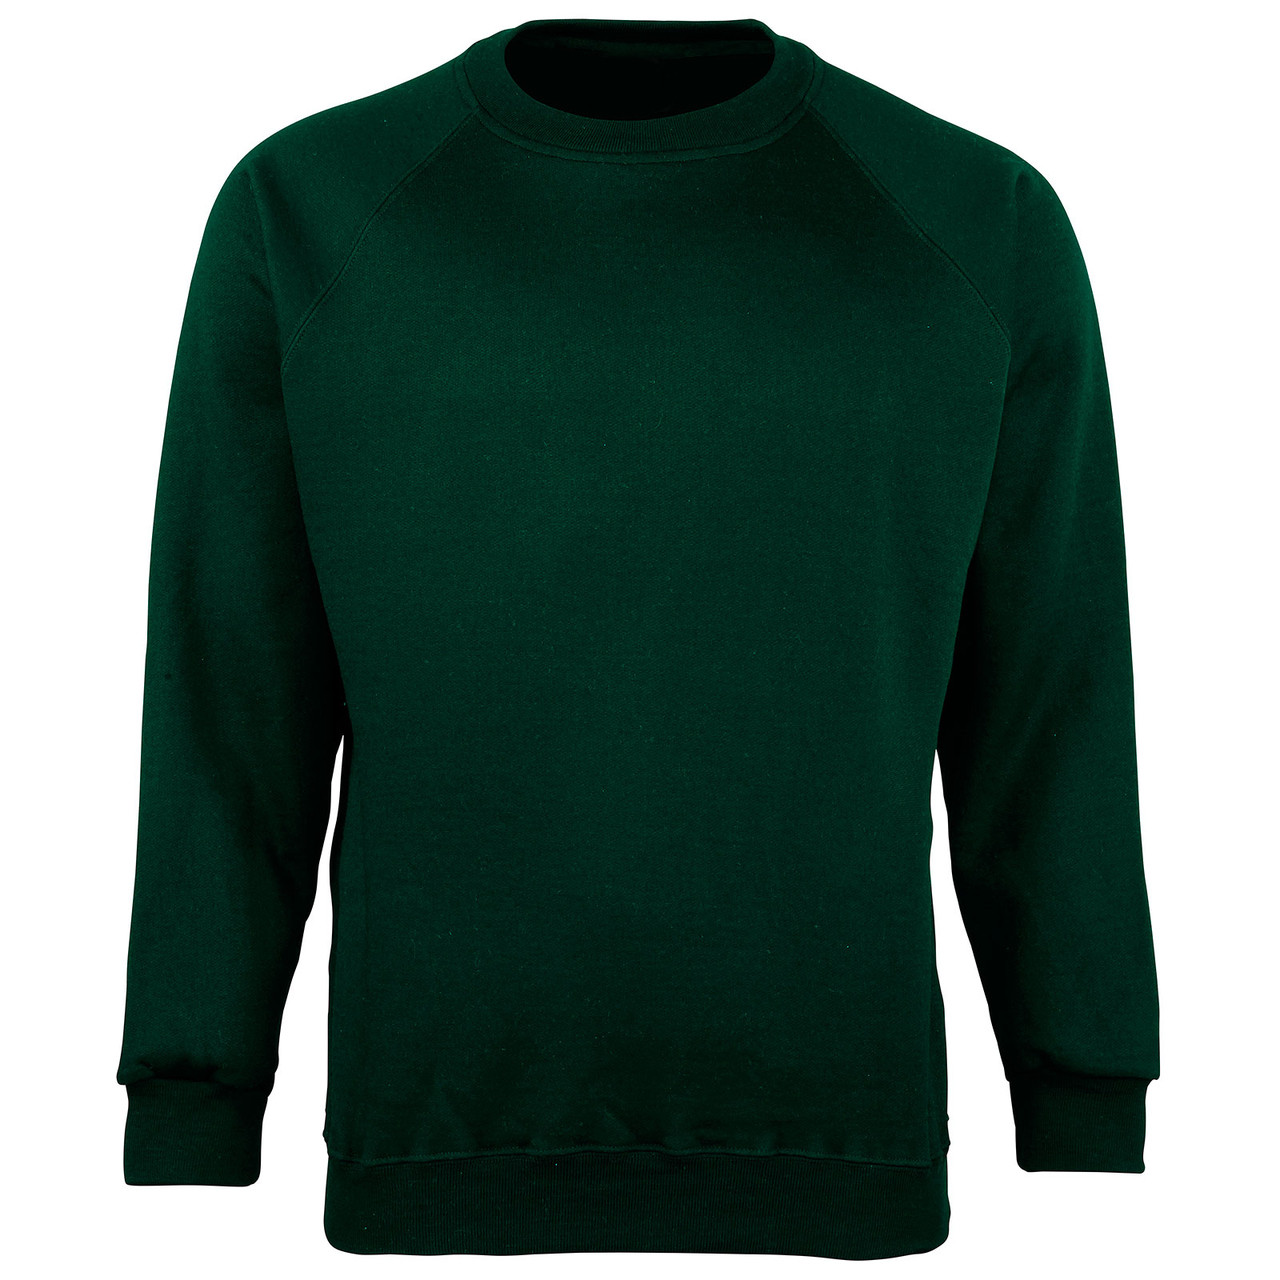 Organic Cotton School Sweatshirt - Bottle Green